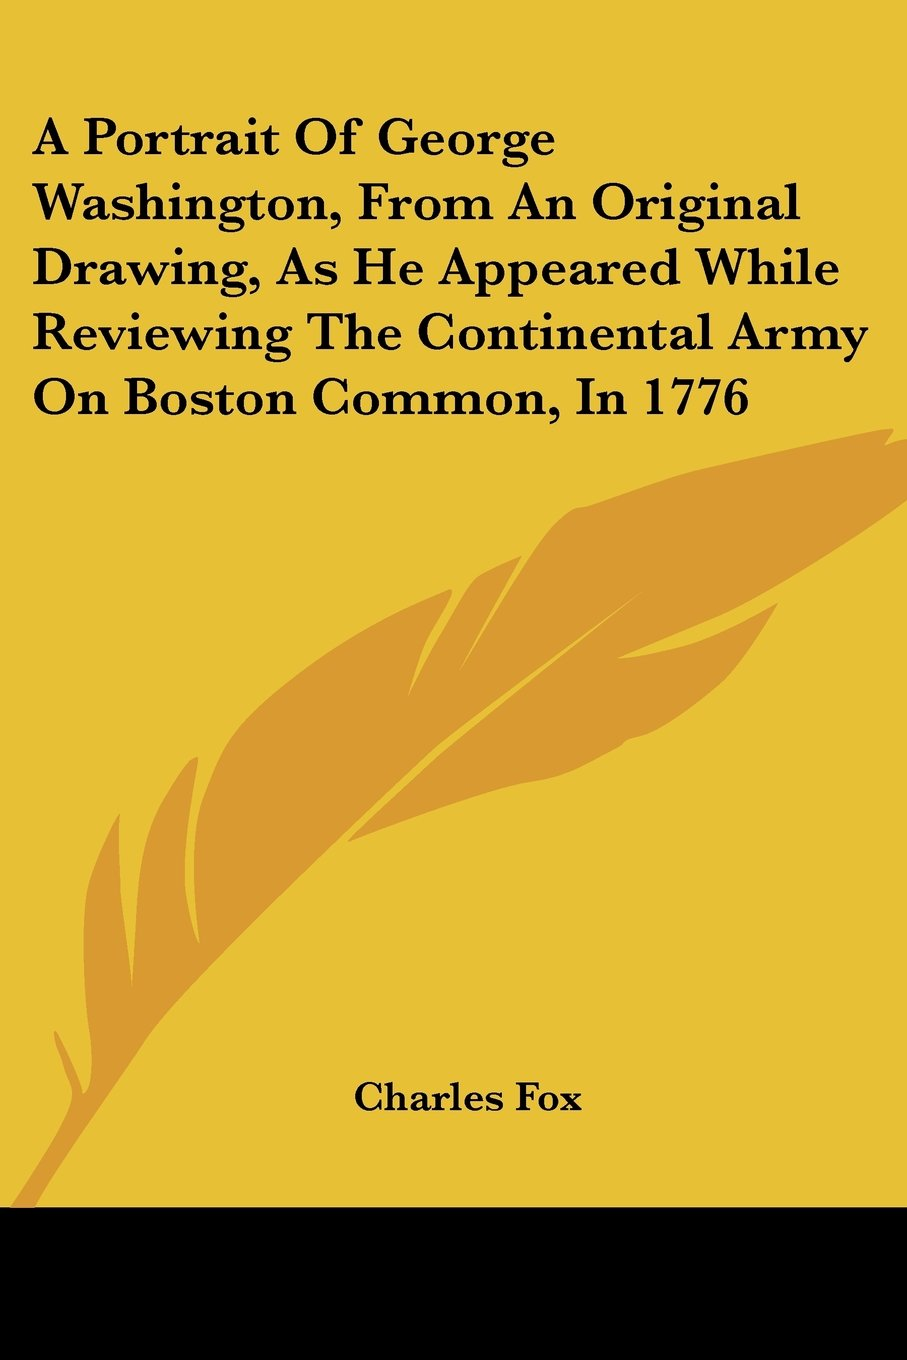 Download A Portrait Of George Washington, From An Original Drawing, As He Appeared While Reviewing The Continental Army On Boston Common, In 1776 pdf epub